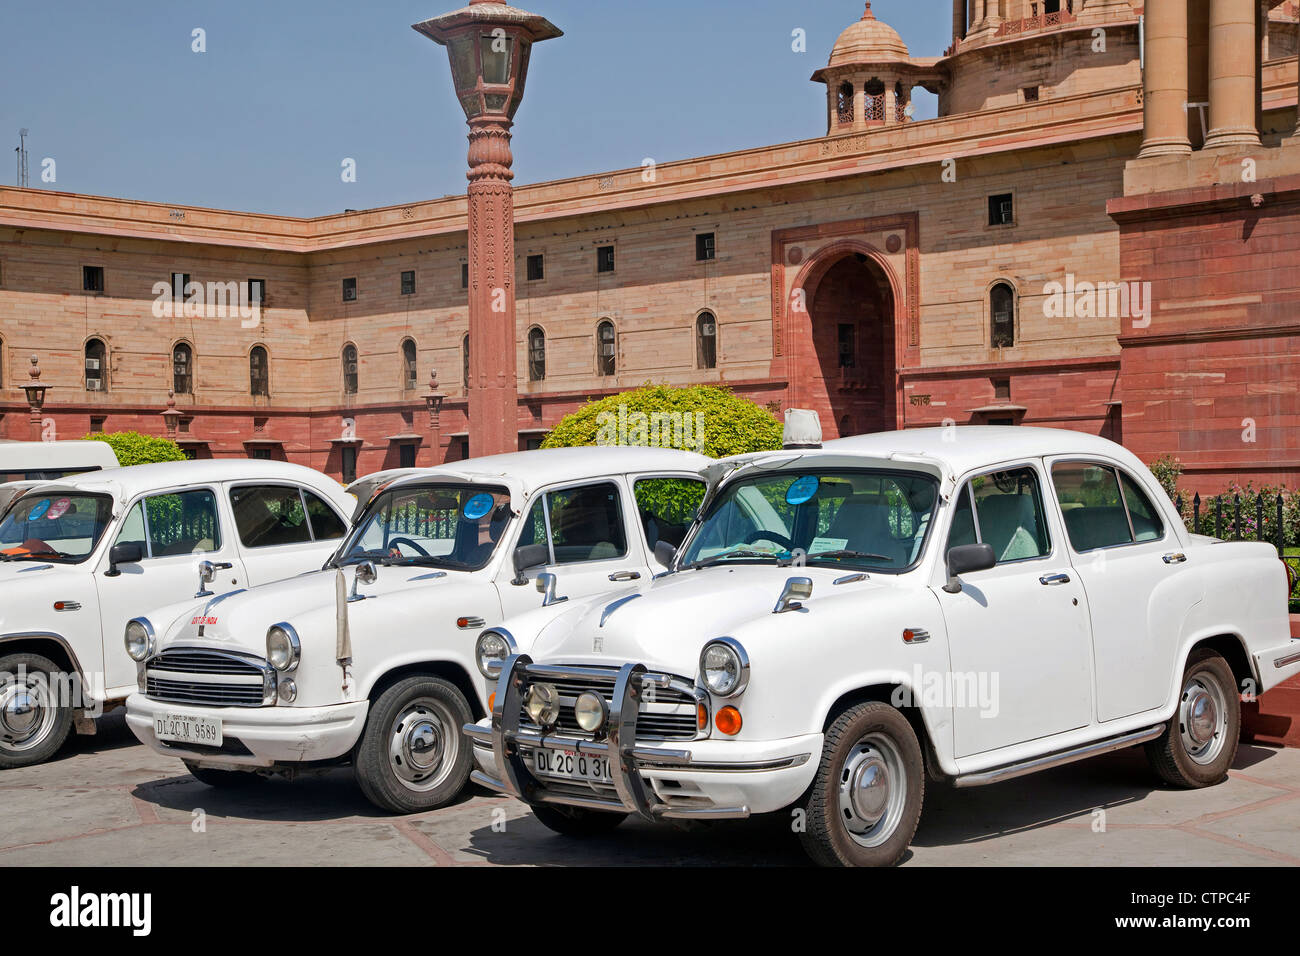 Traditional old fashioned white Indian cars at Rashtrapati Bhavan ...